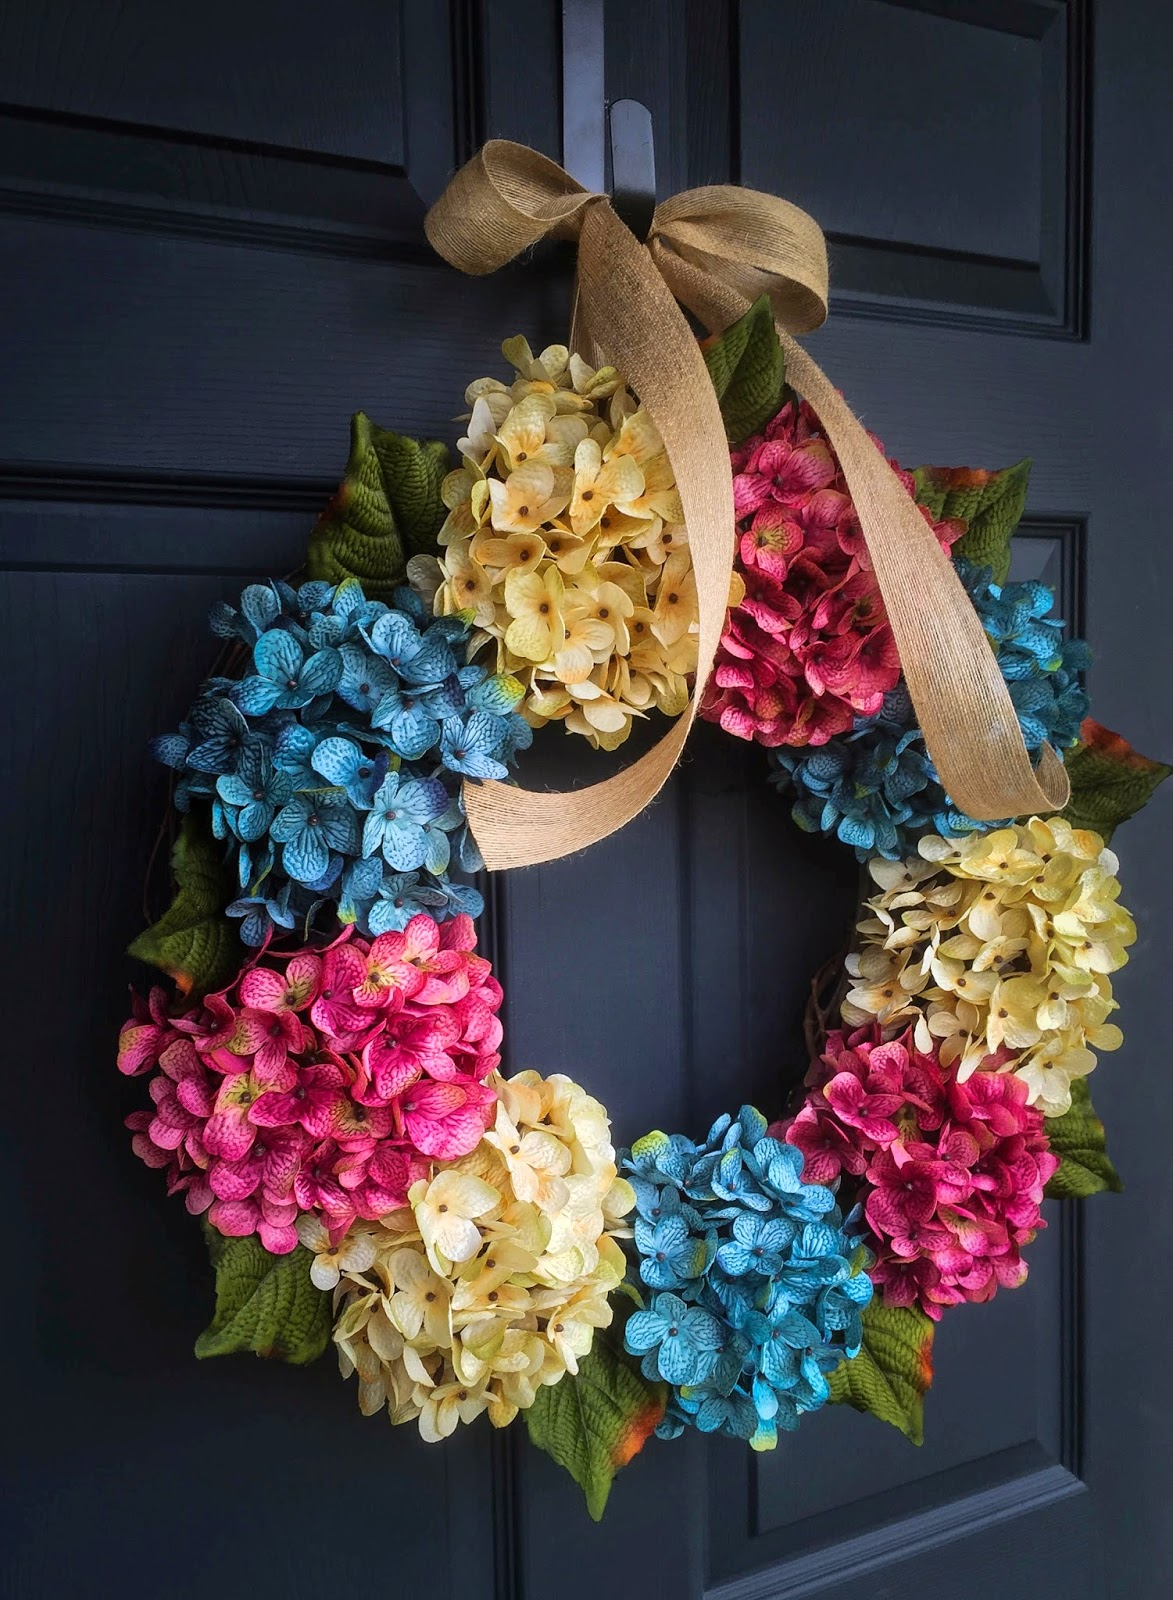 New Summer Hydrangea Wreath For Beach House Decor By Homehearthgarden